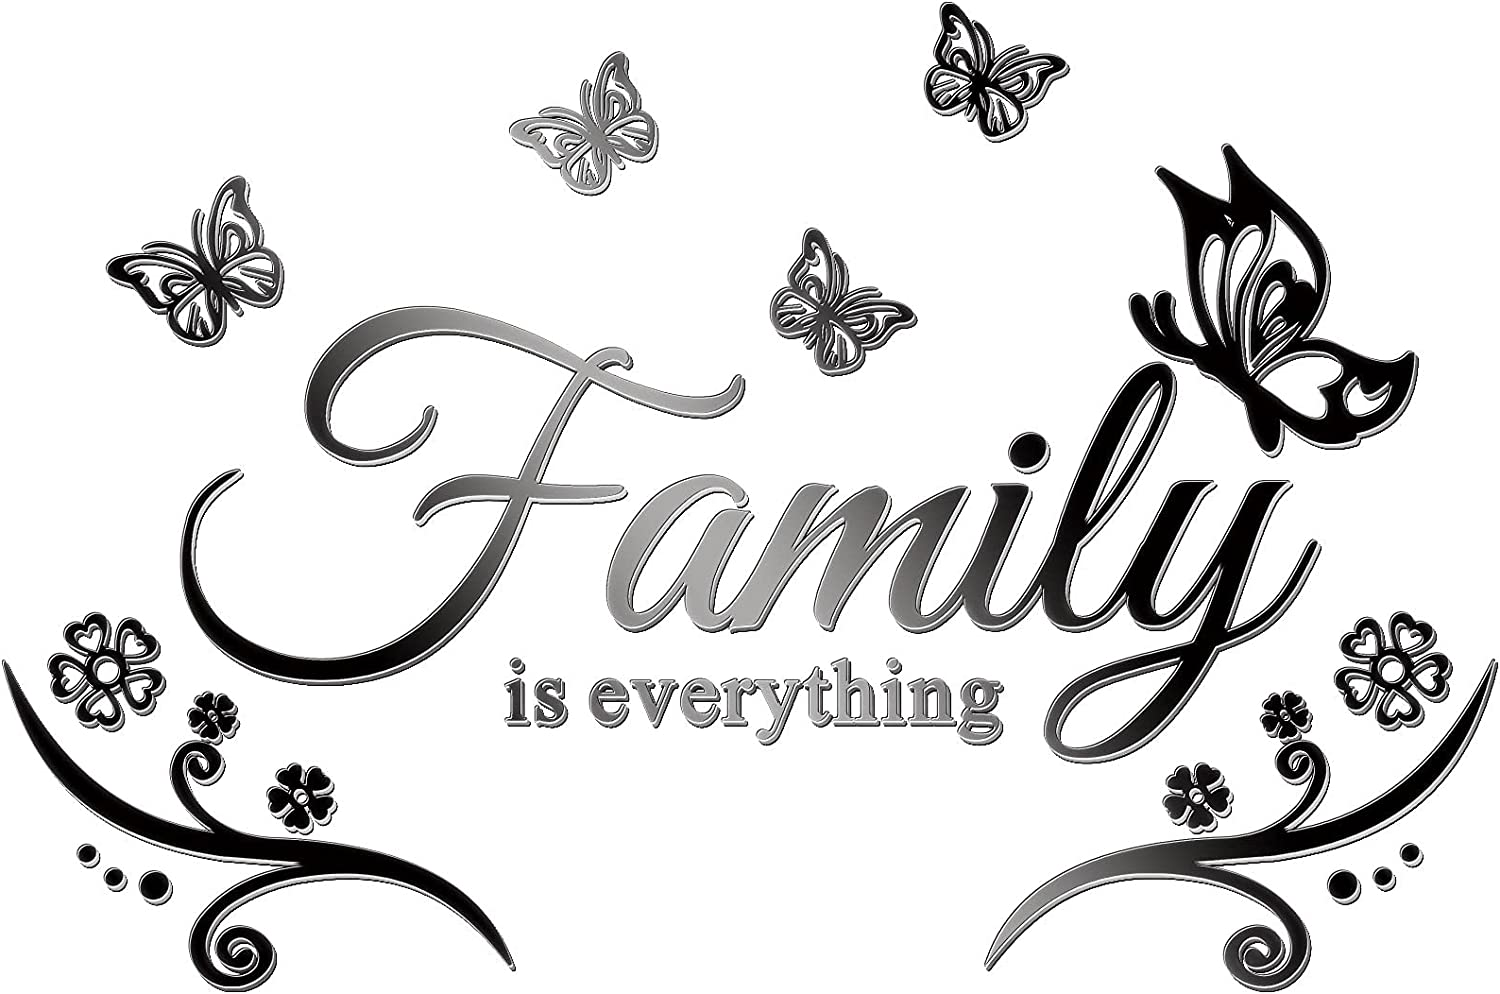 3D Acrylic Mirror Wall Decor Stickers Family Letter Quotes Wall Stickers Removable Family Wall Art Decals DIY Motivational Family Butterfly Mirror Stickers for Home Office Dorm (Black Chic Family)